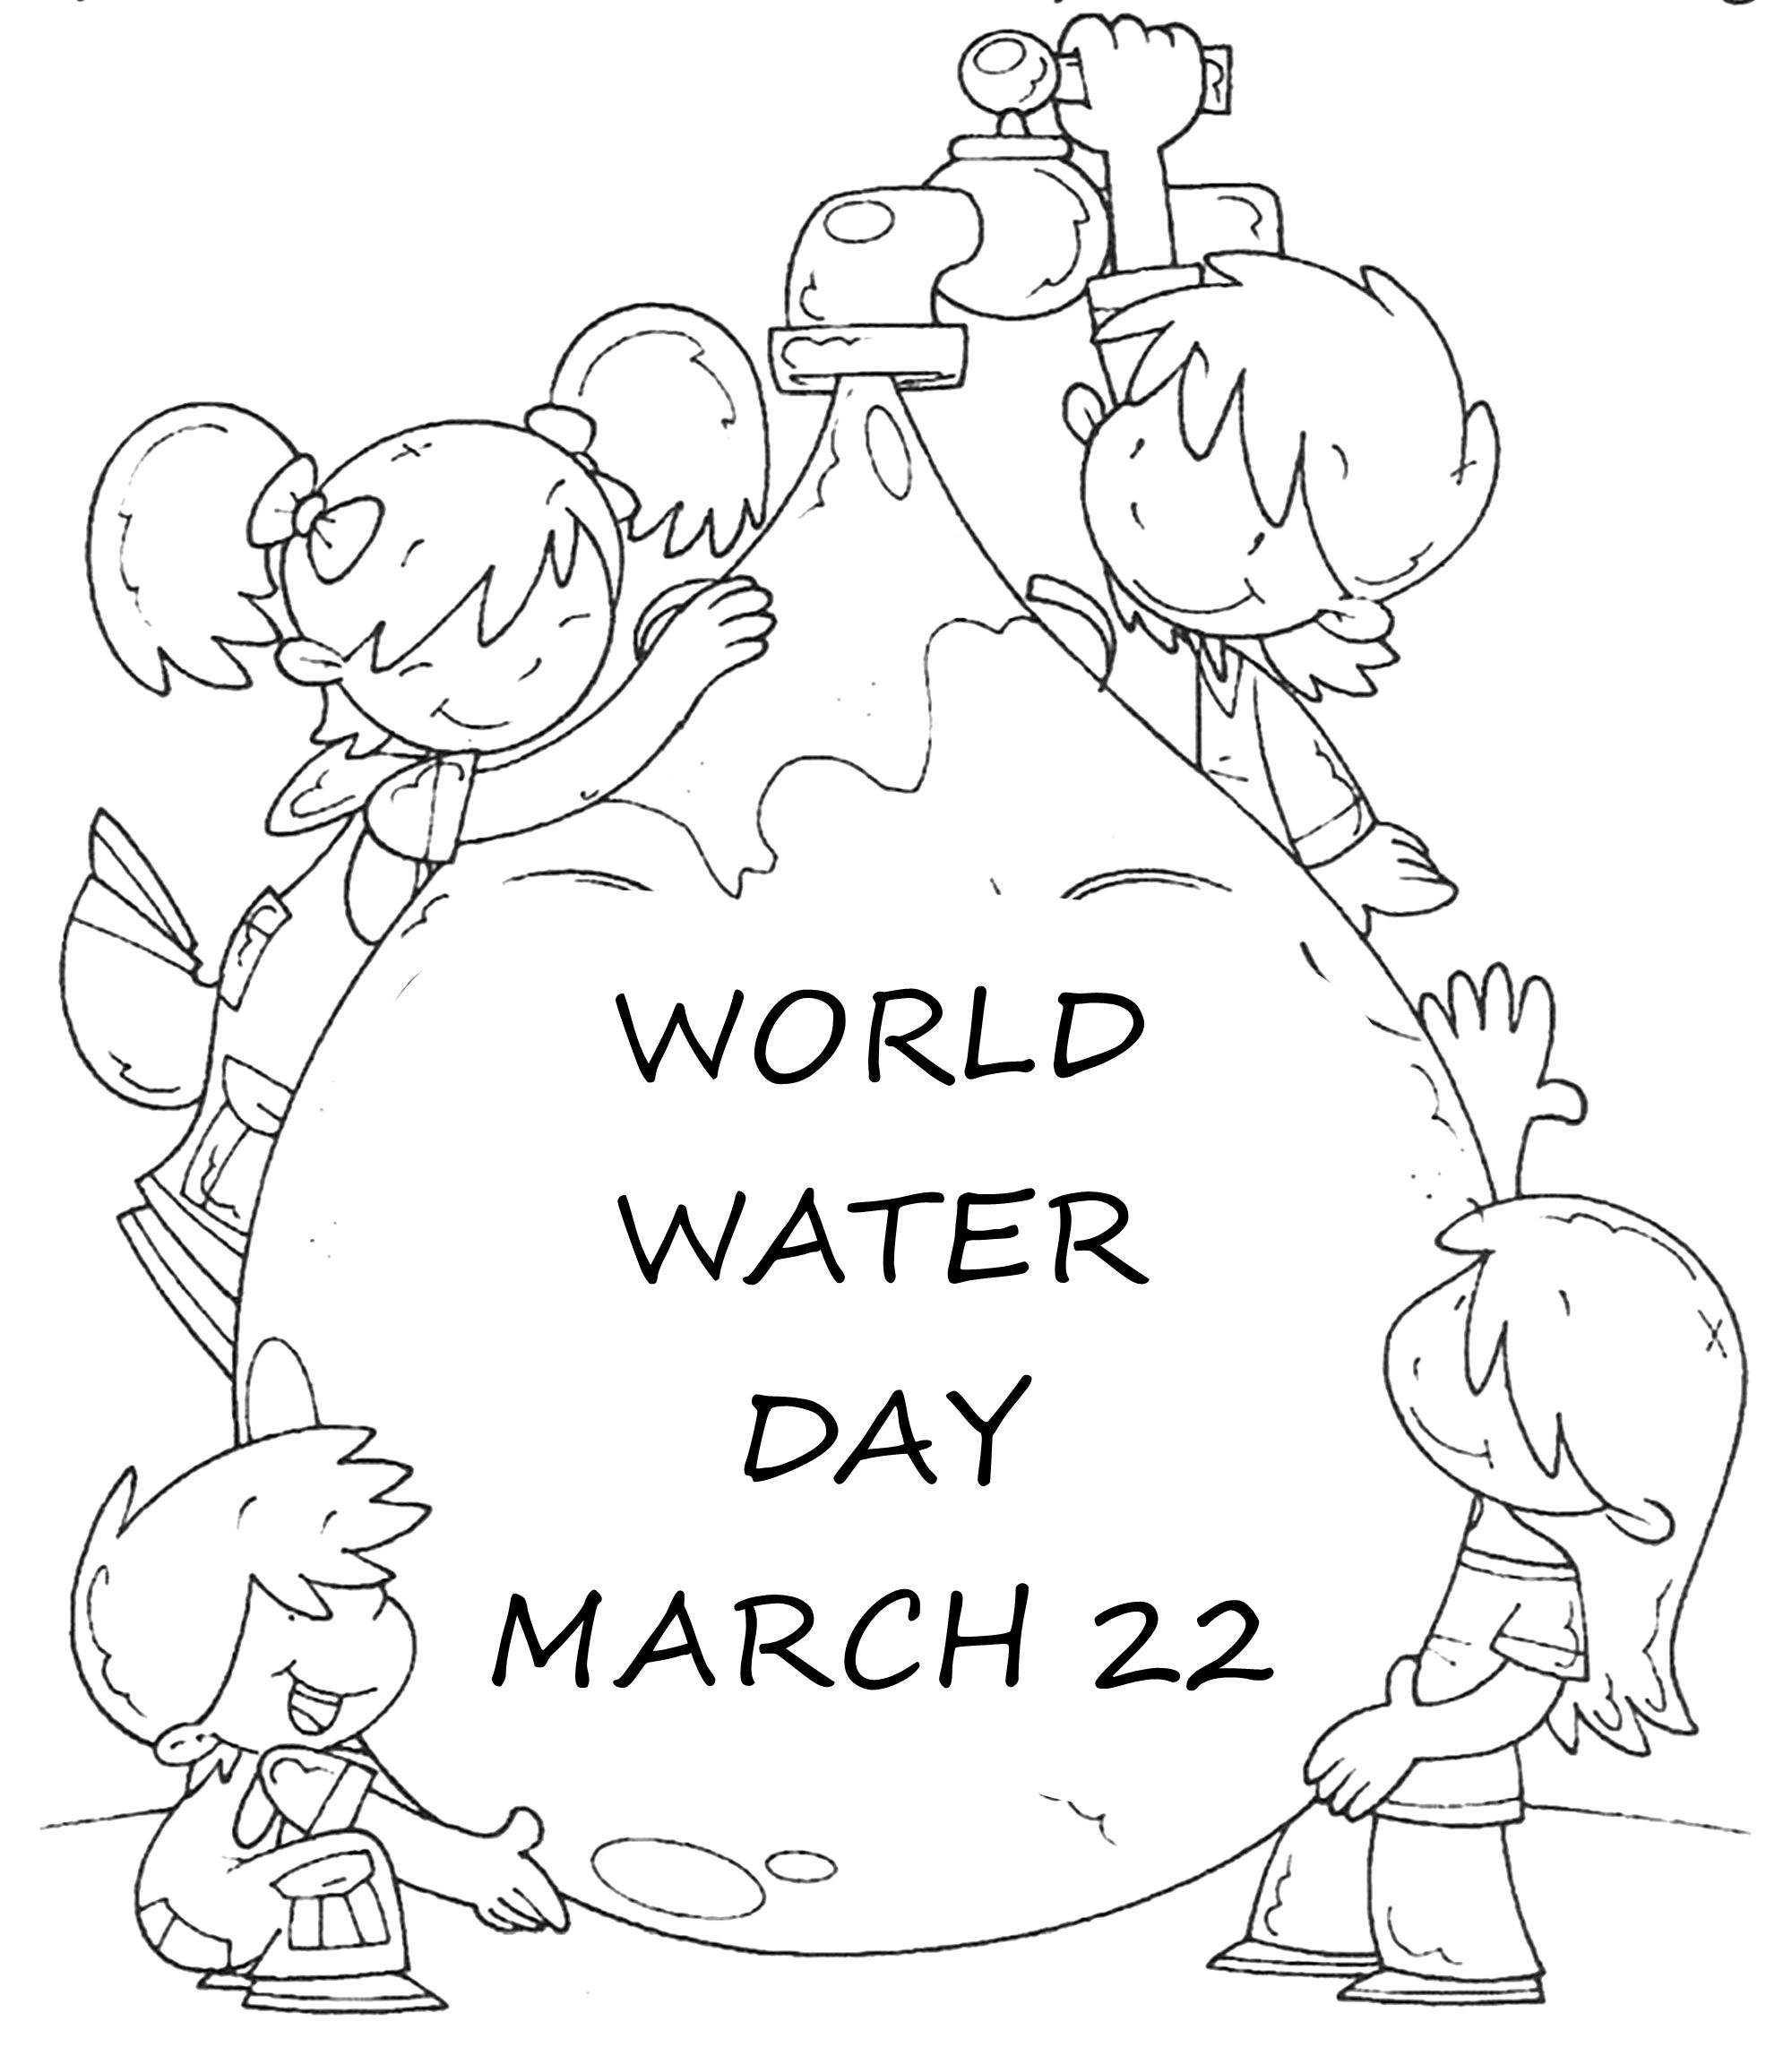 water day coloring pages world water day 22 march coloring page water drop coloring pages water day